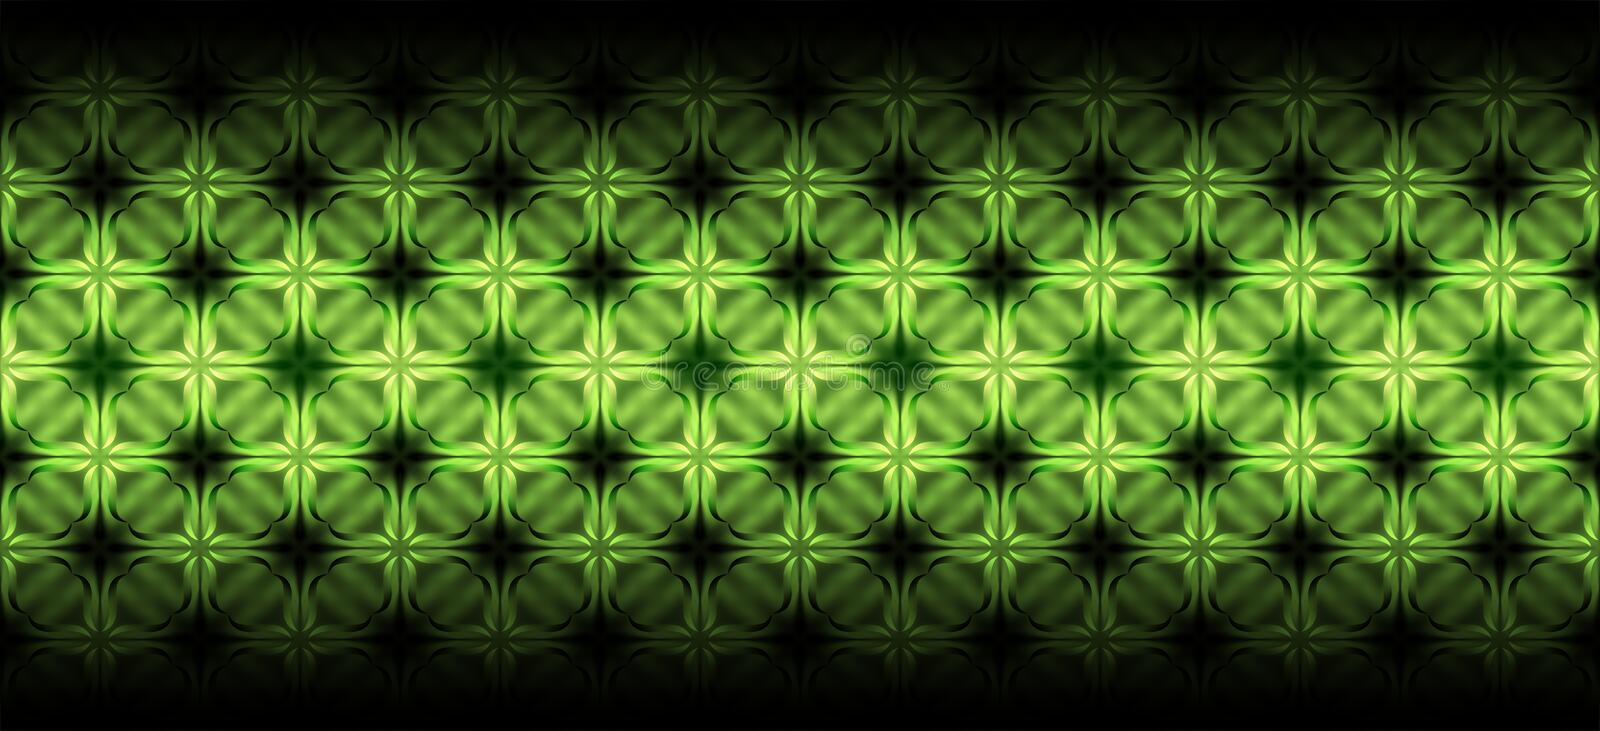 Green and black abstract pattern background vector design royalty free illustration